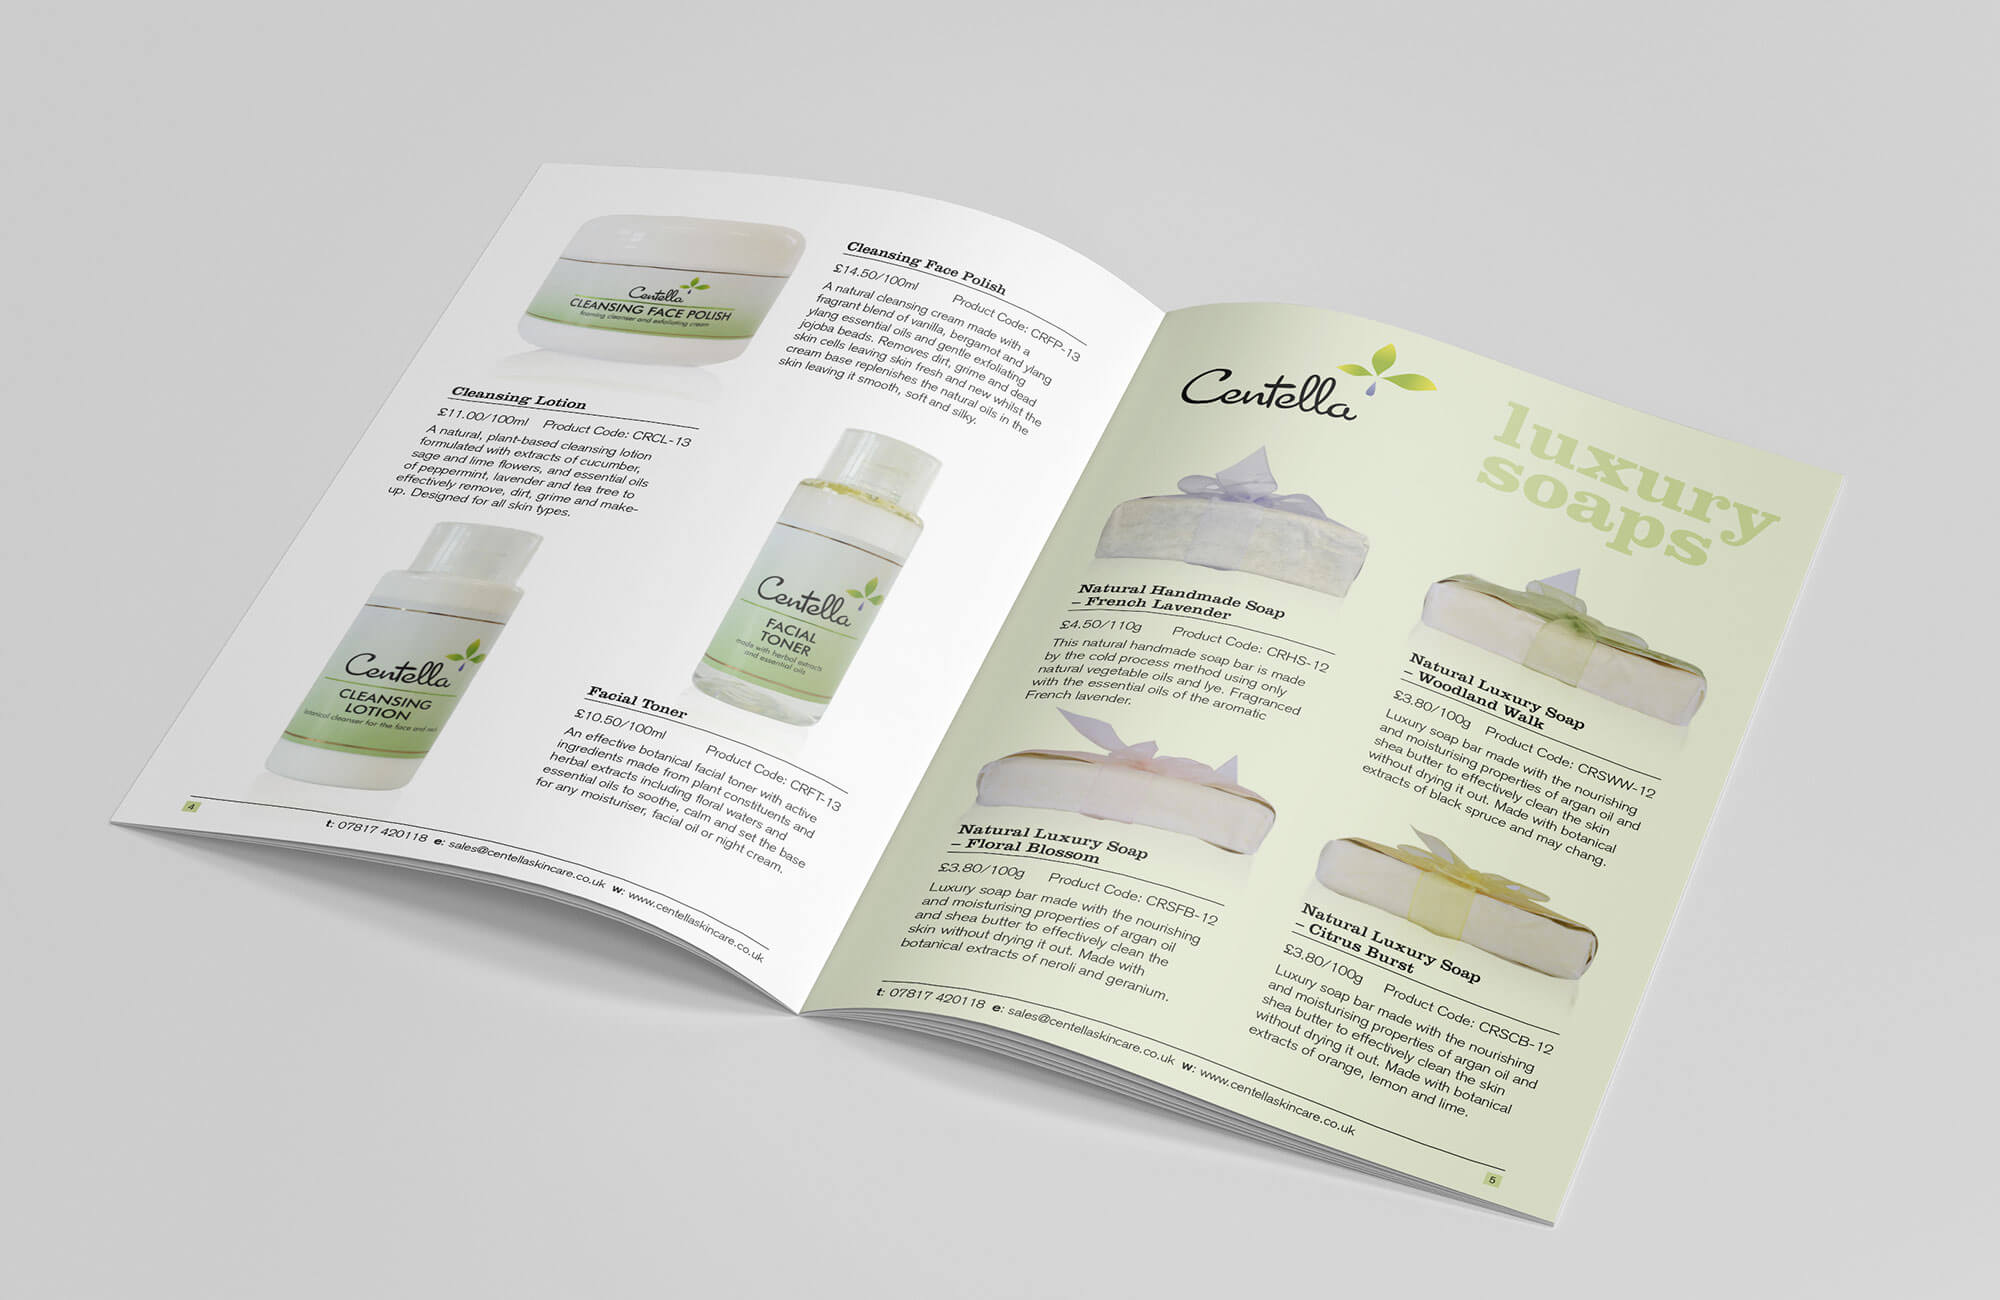 Centella Brochure Design